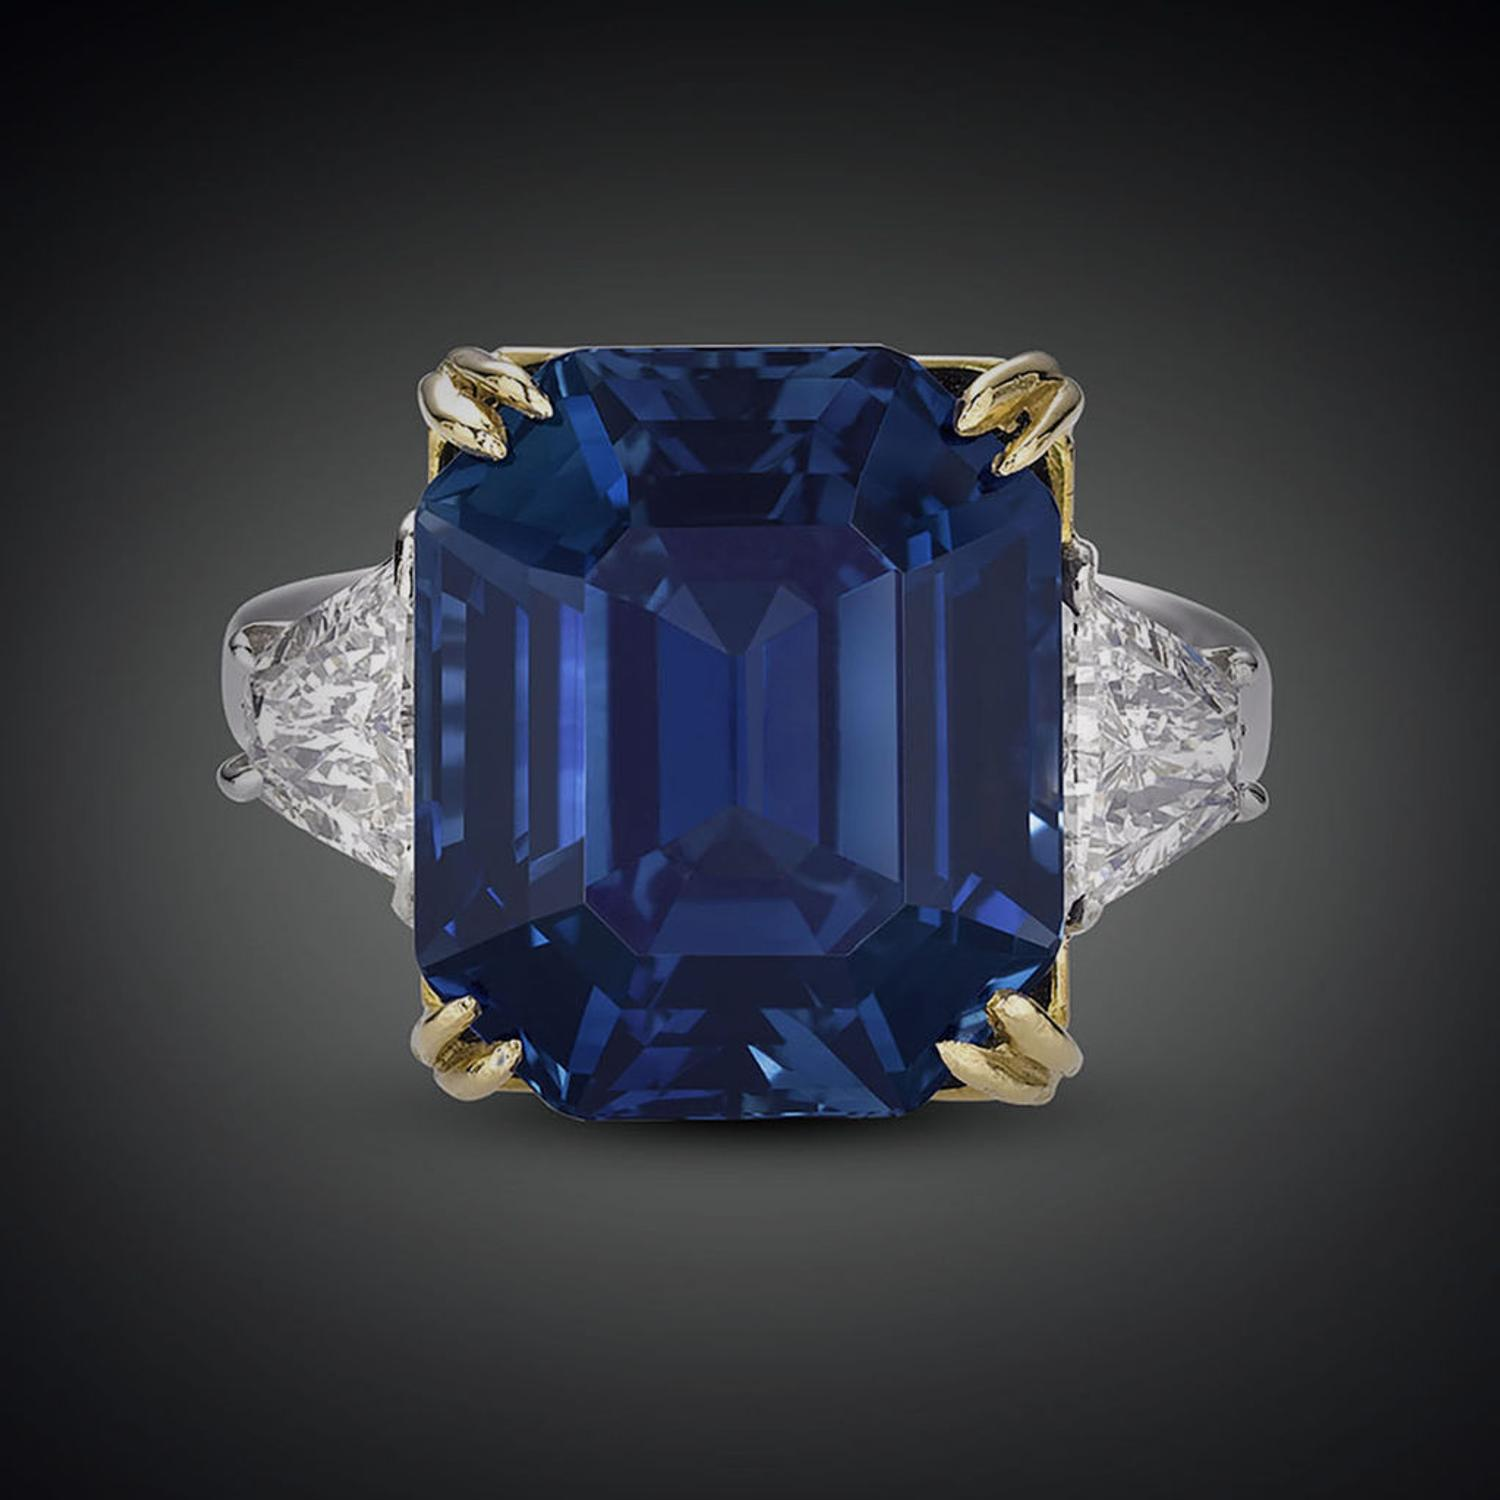 history rarity rare rau m com sapphire beauty kashmir from antiques post defined the artfixdaily blogs opulence s blog